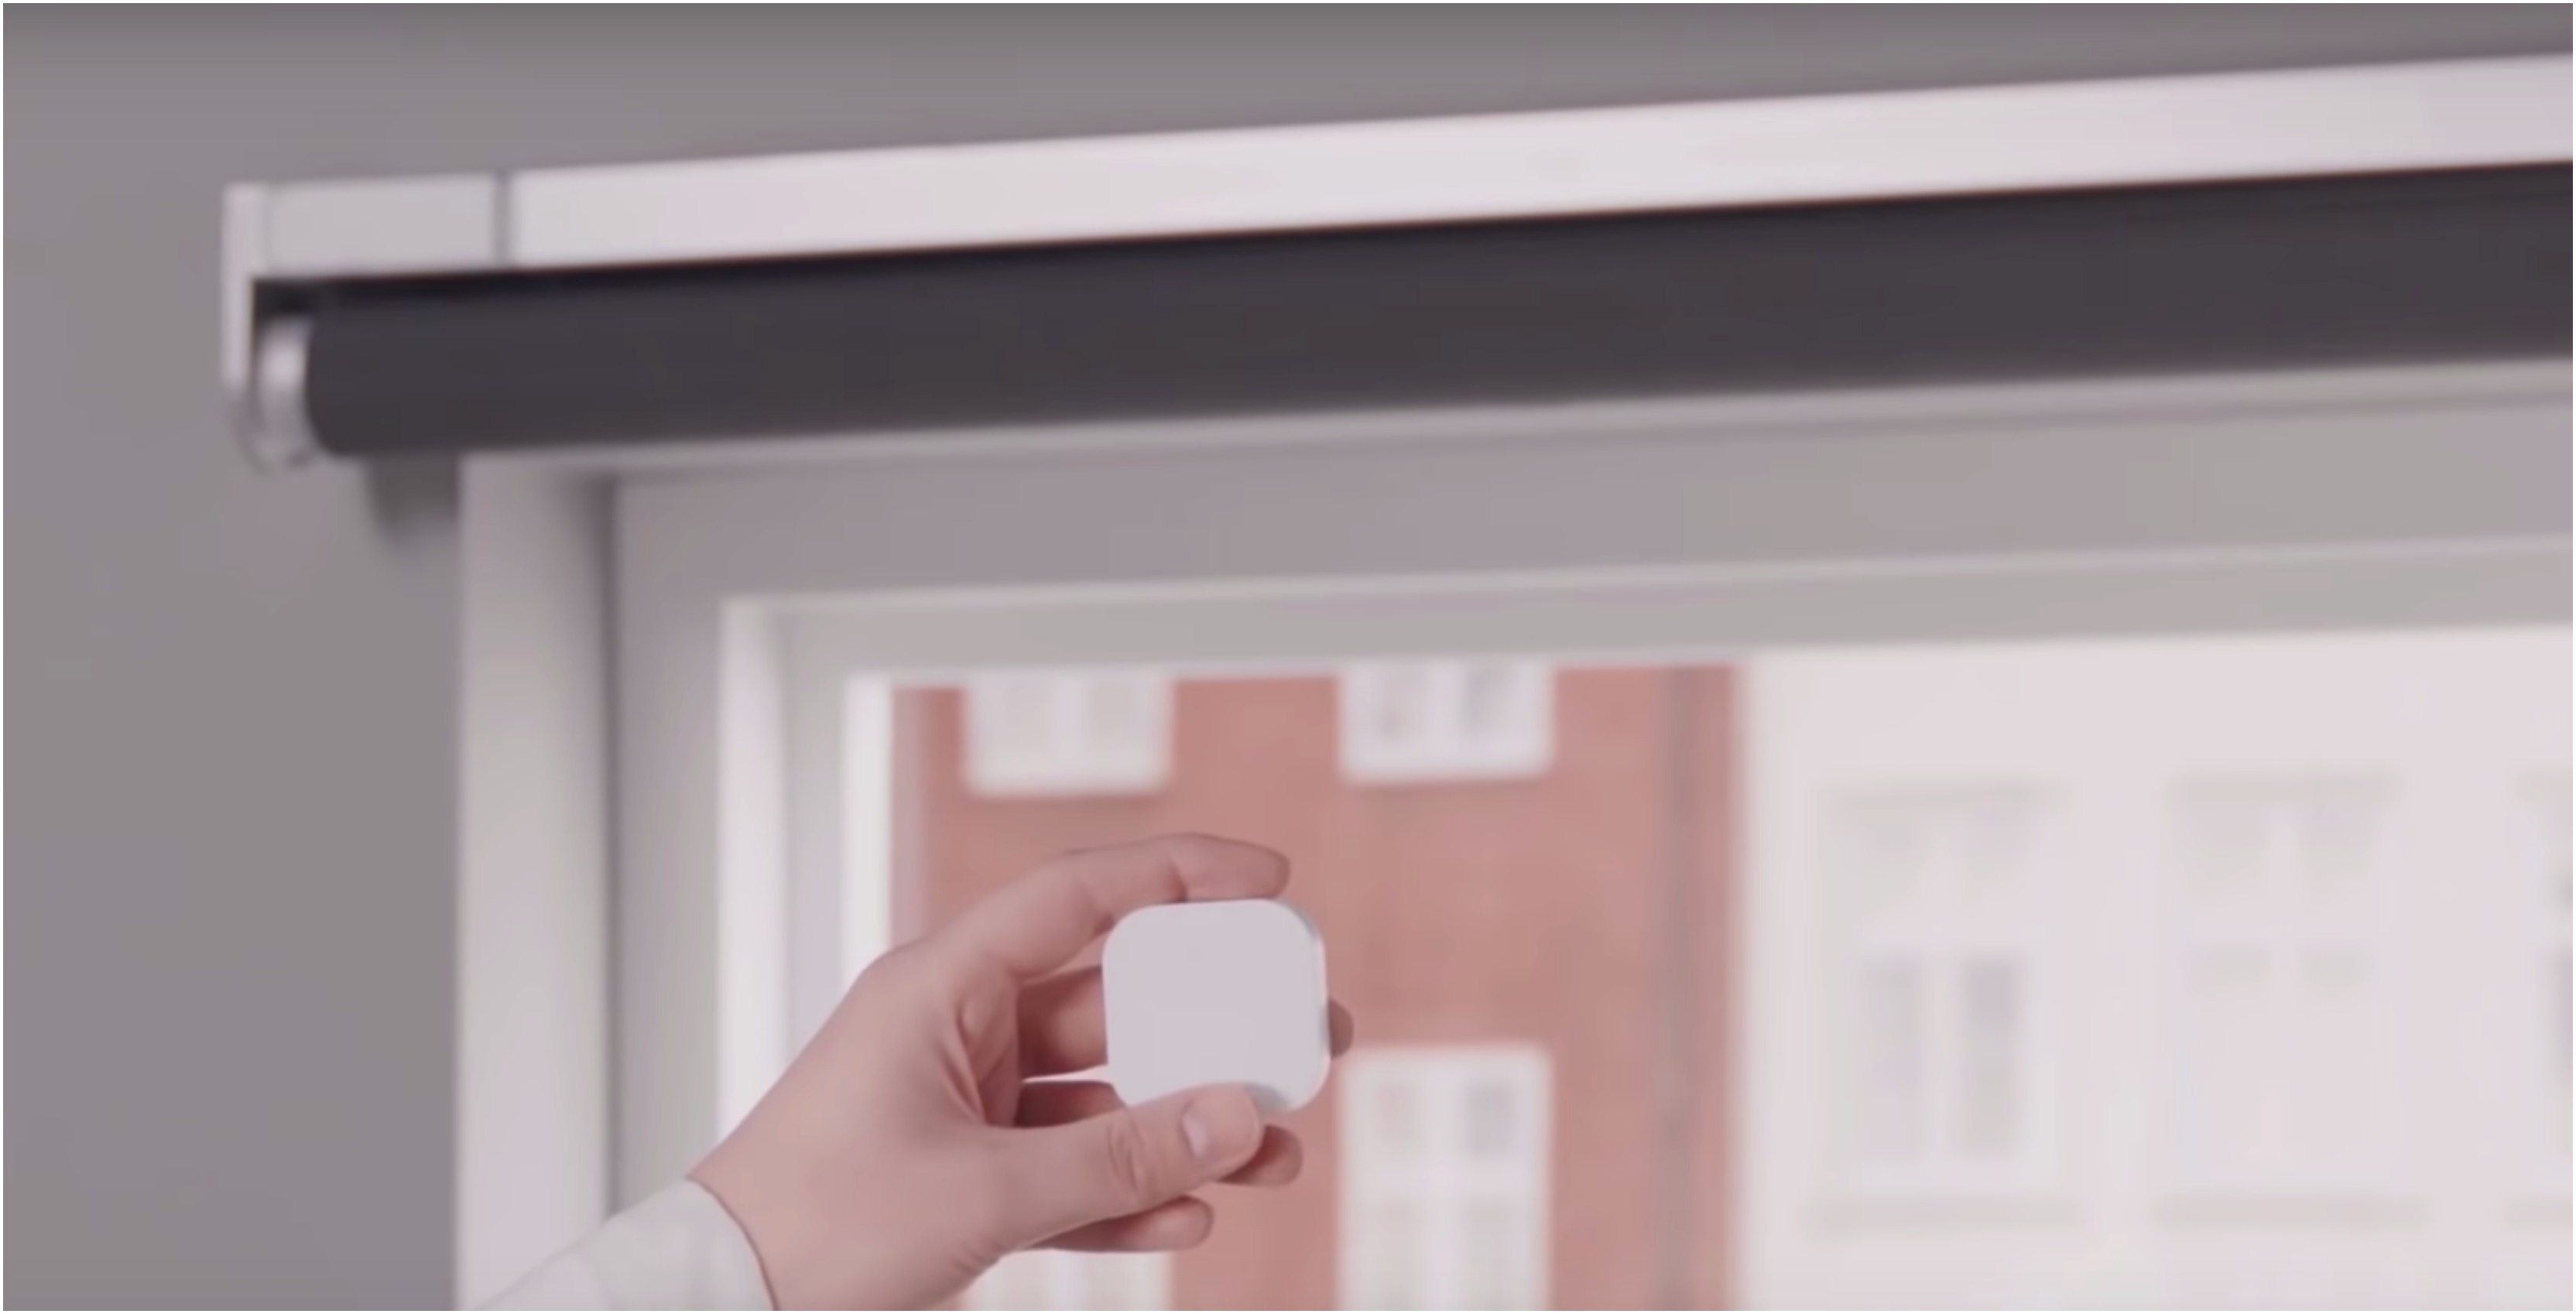 Ikea's smart blinds to support Google Assistant, not Apple HomeKit or Alexa at launch